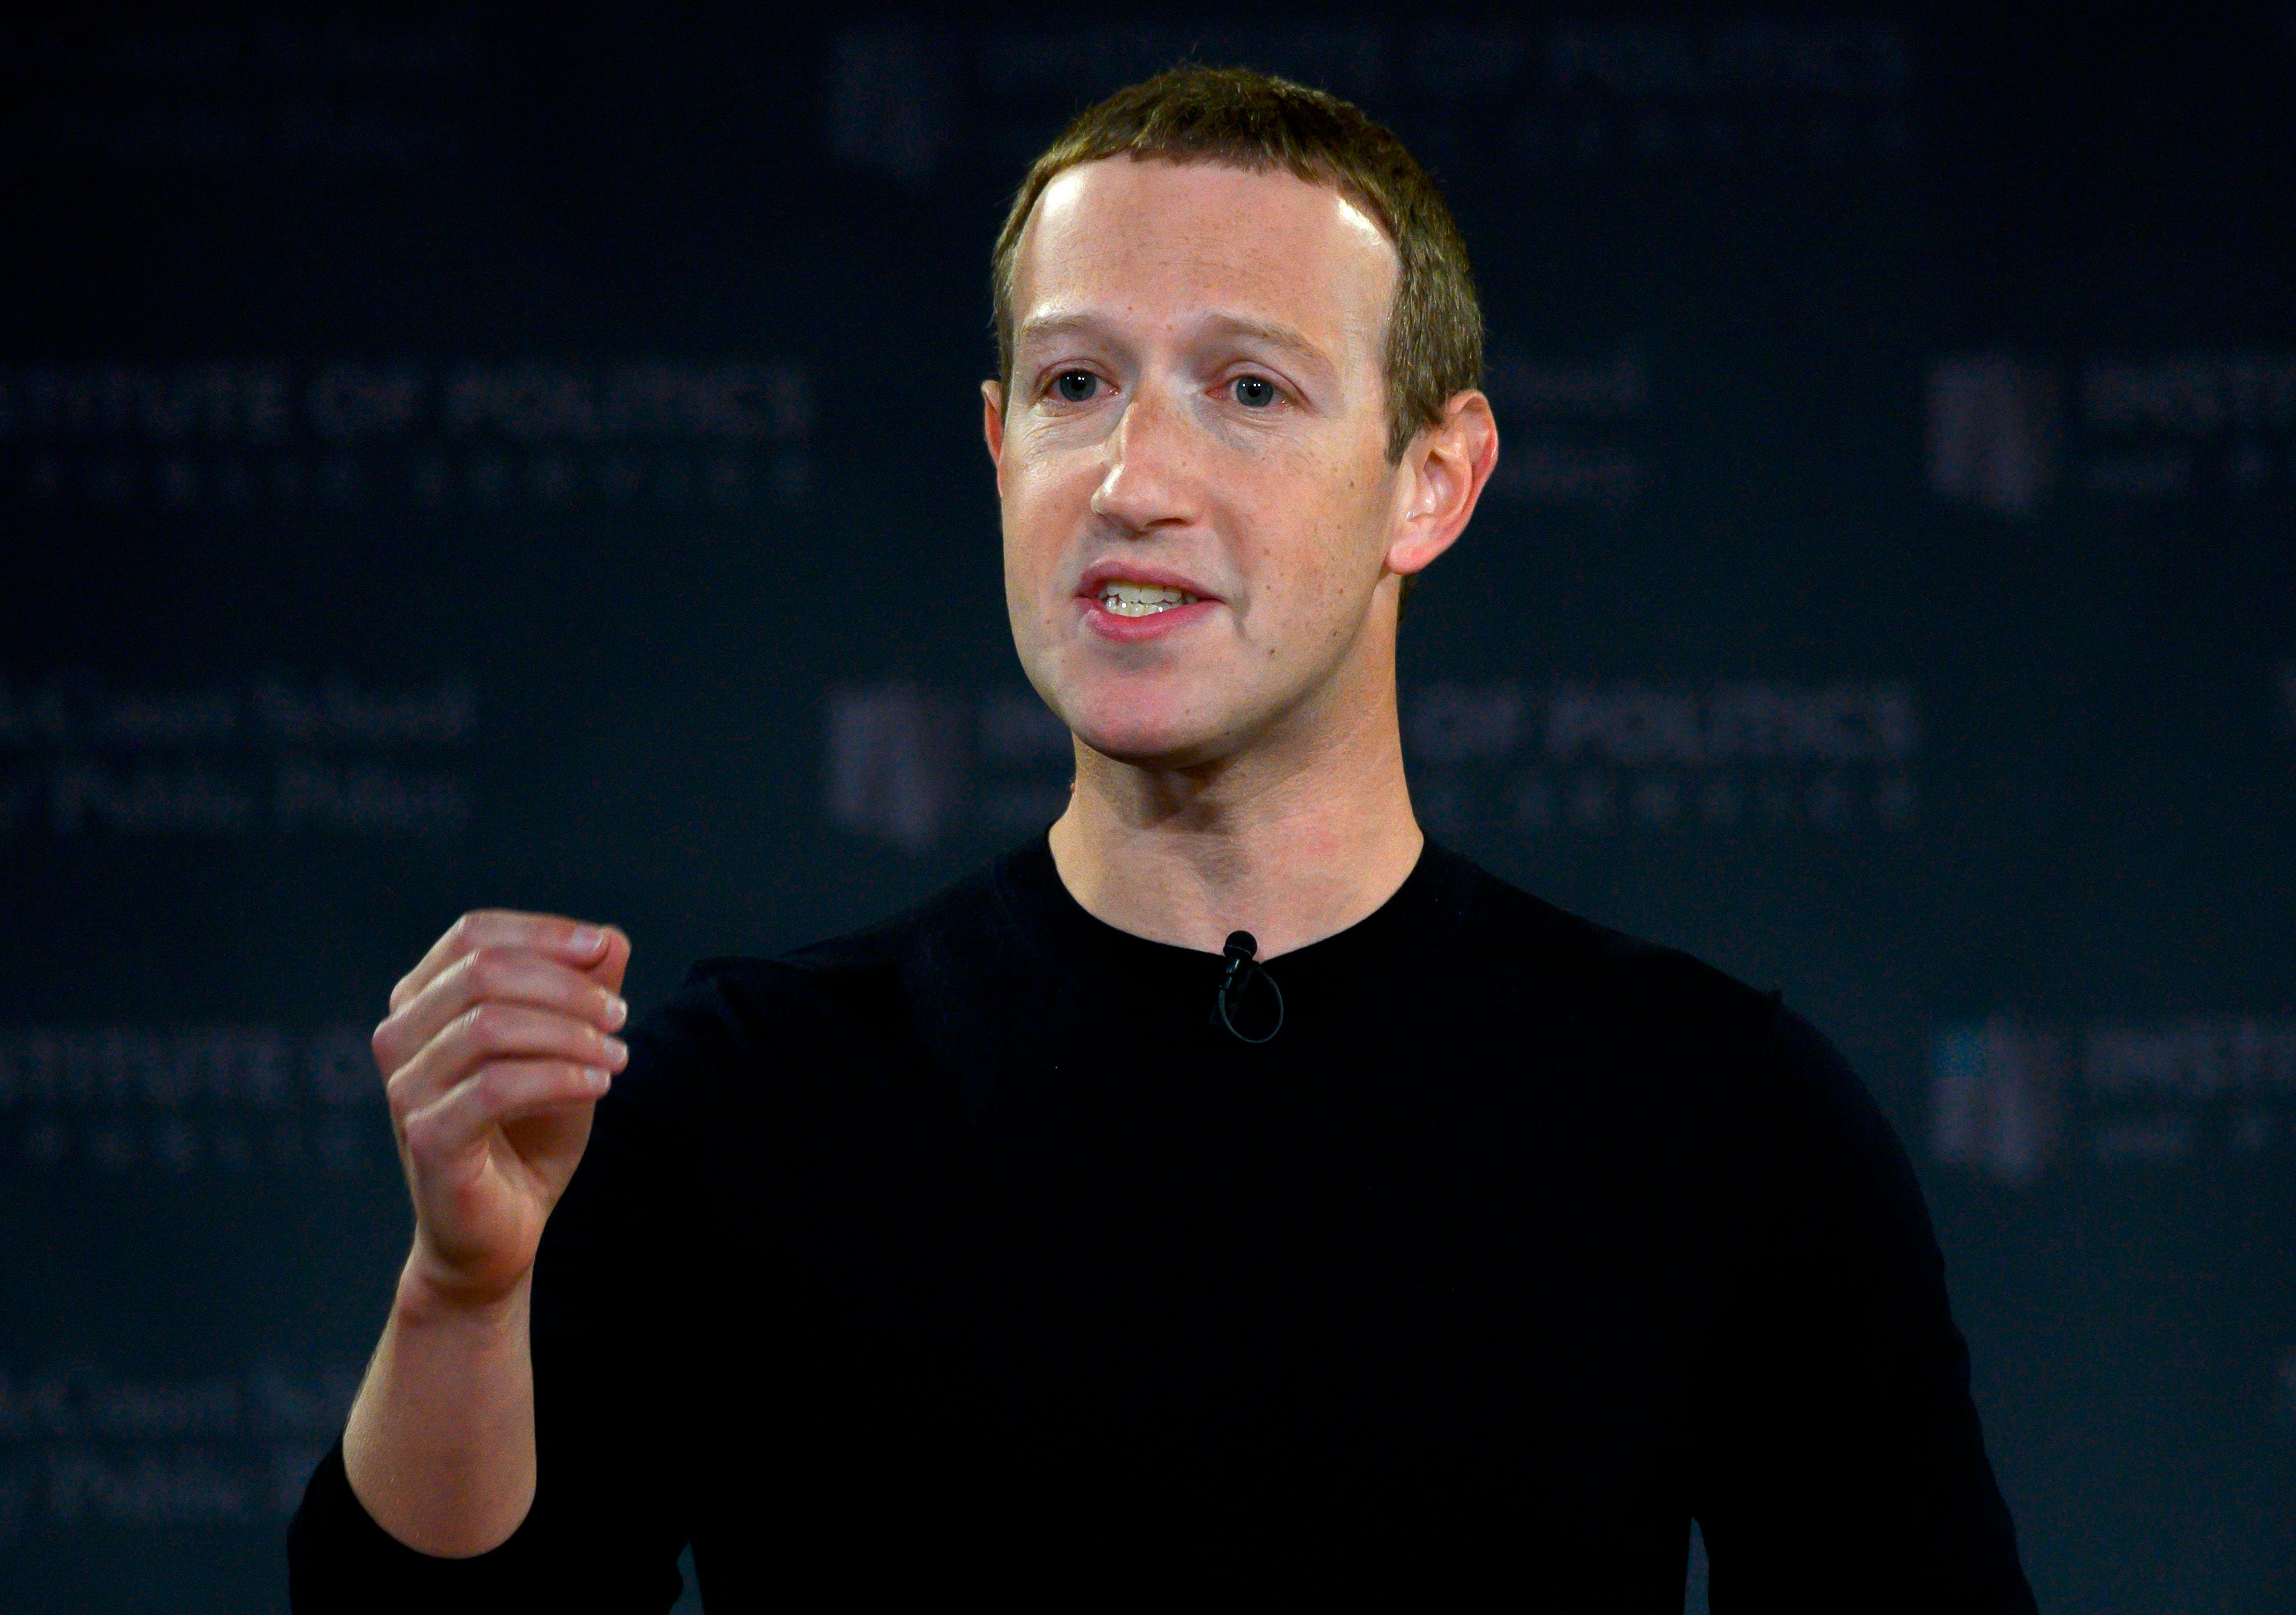 Mark Zuckerberg's social media giant Facebook has pledgedtoemploy 30% more more Black people in leadership positions over the next five years.